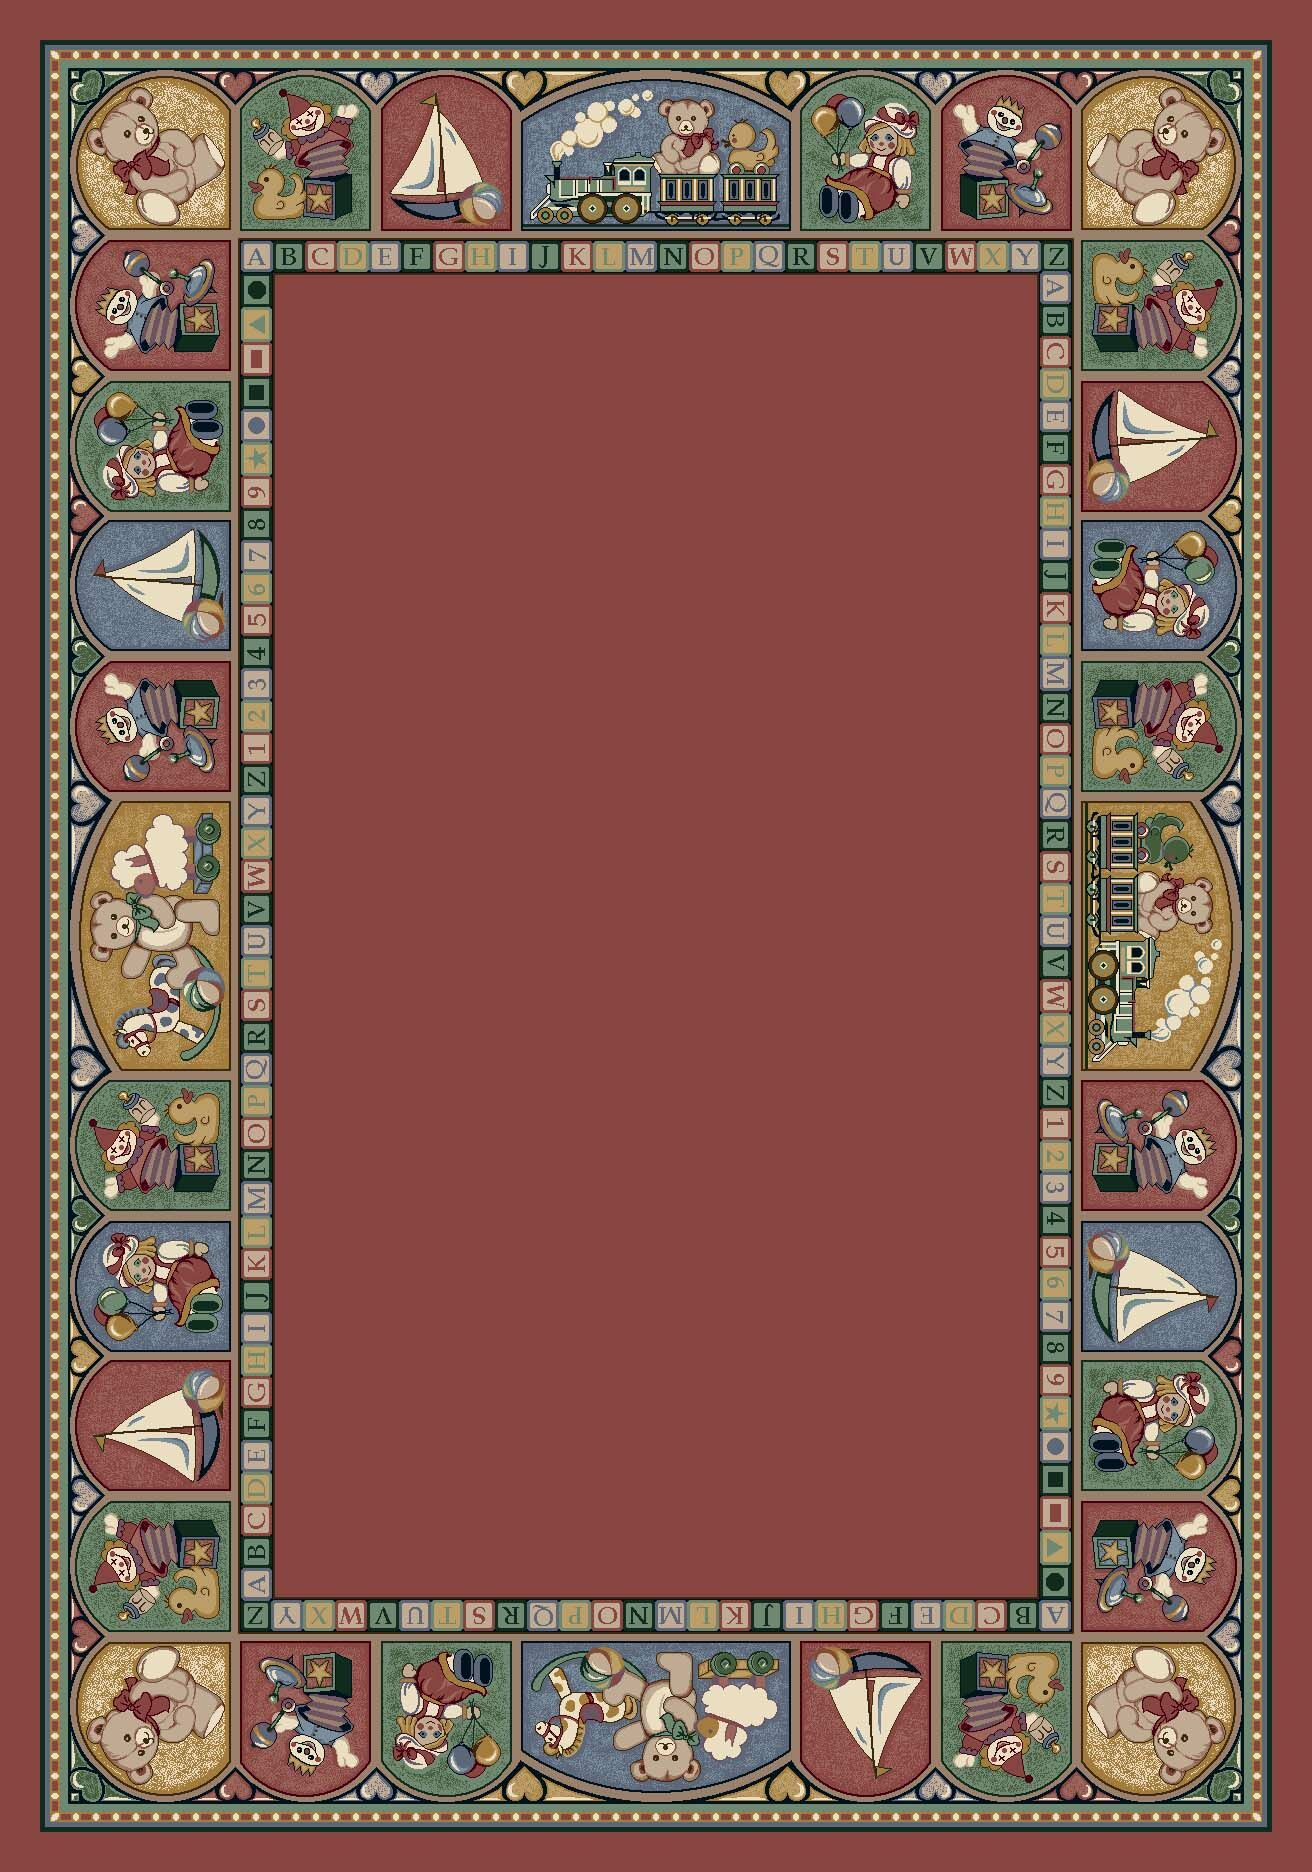 Signature Toy Parade Rose Area Rug Rug Size: Oval 5'4